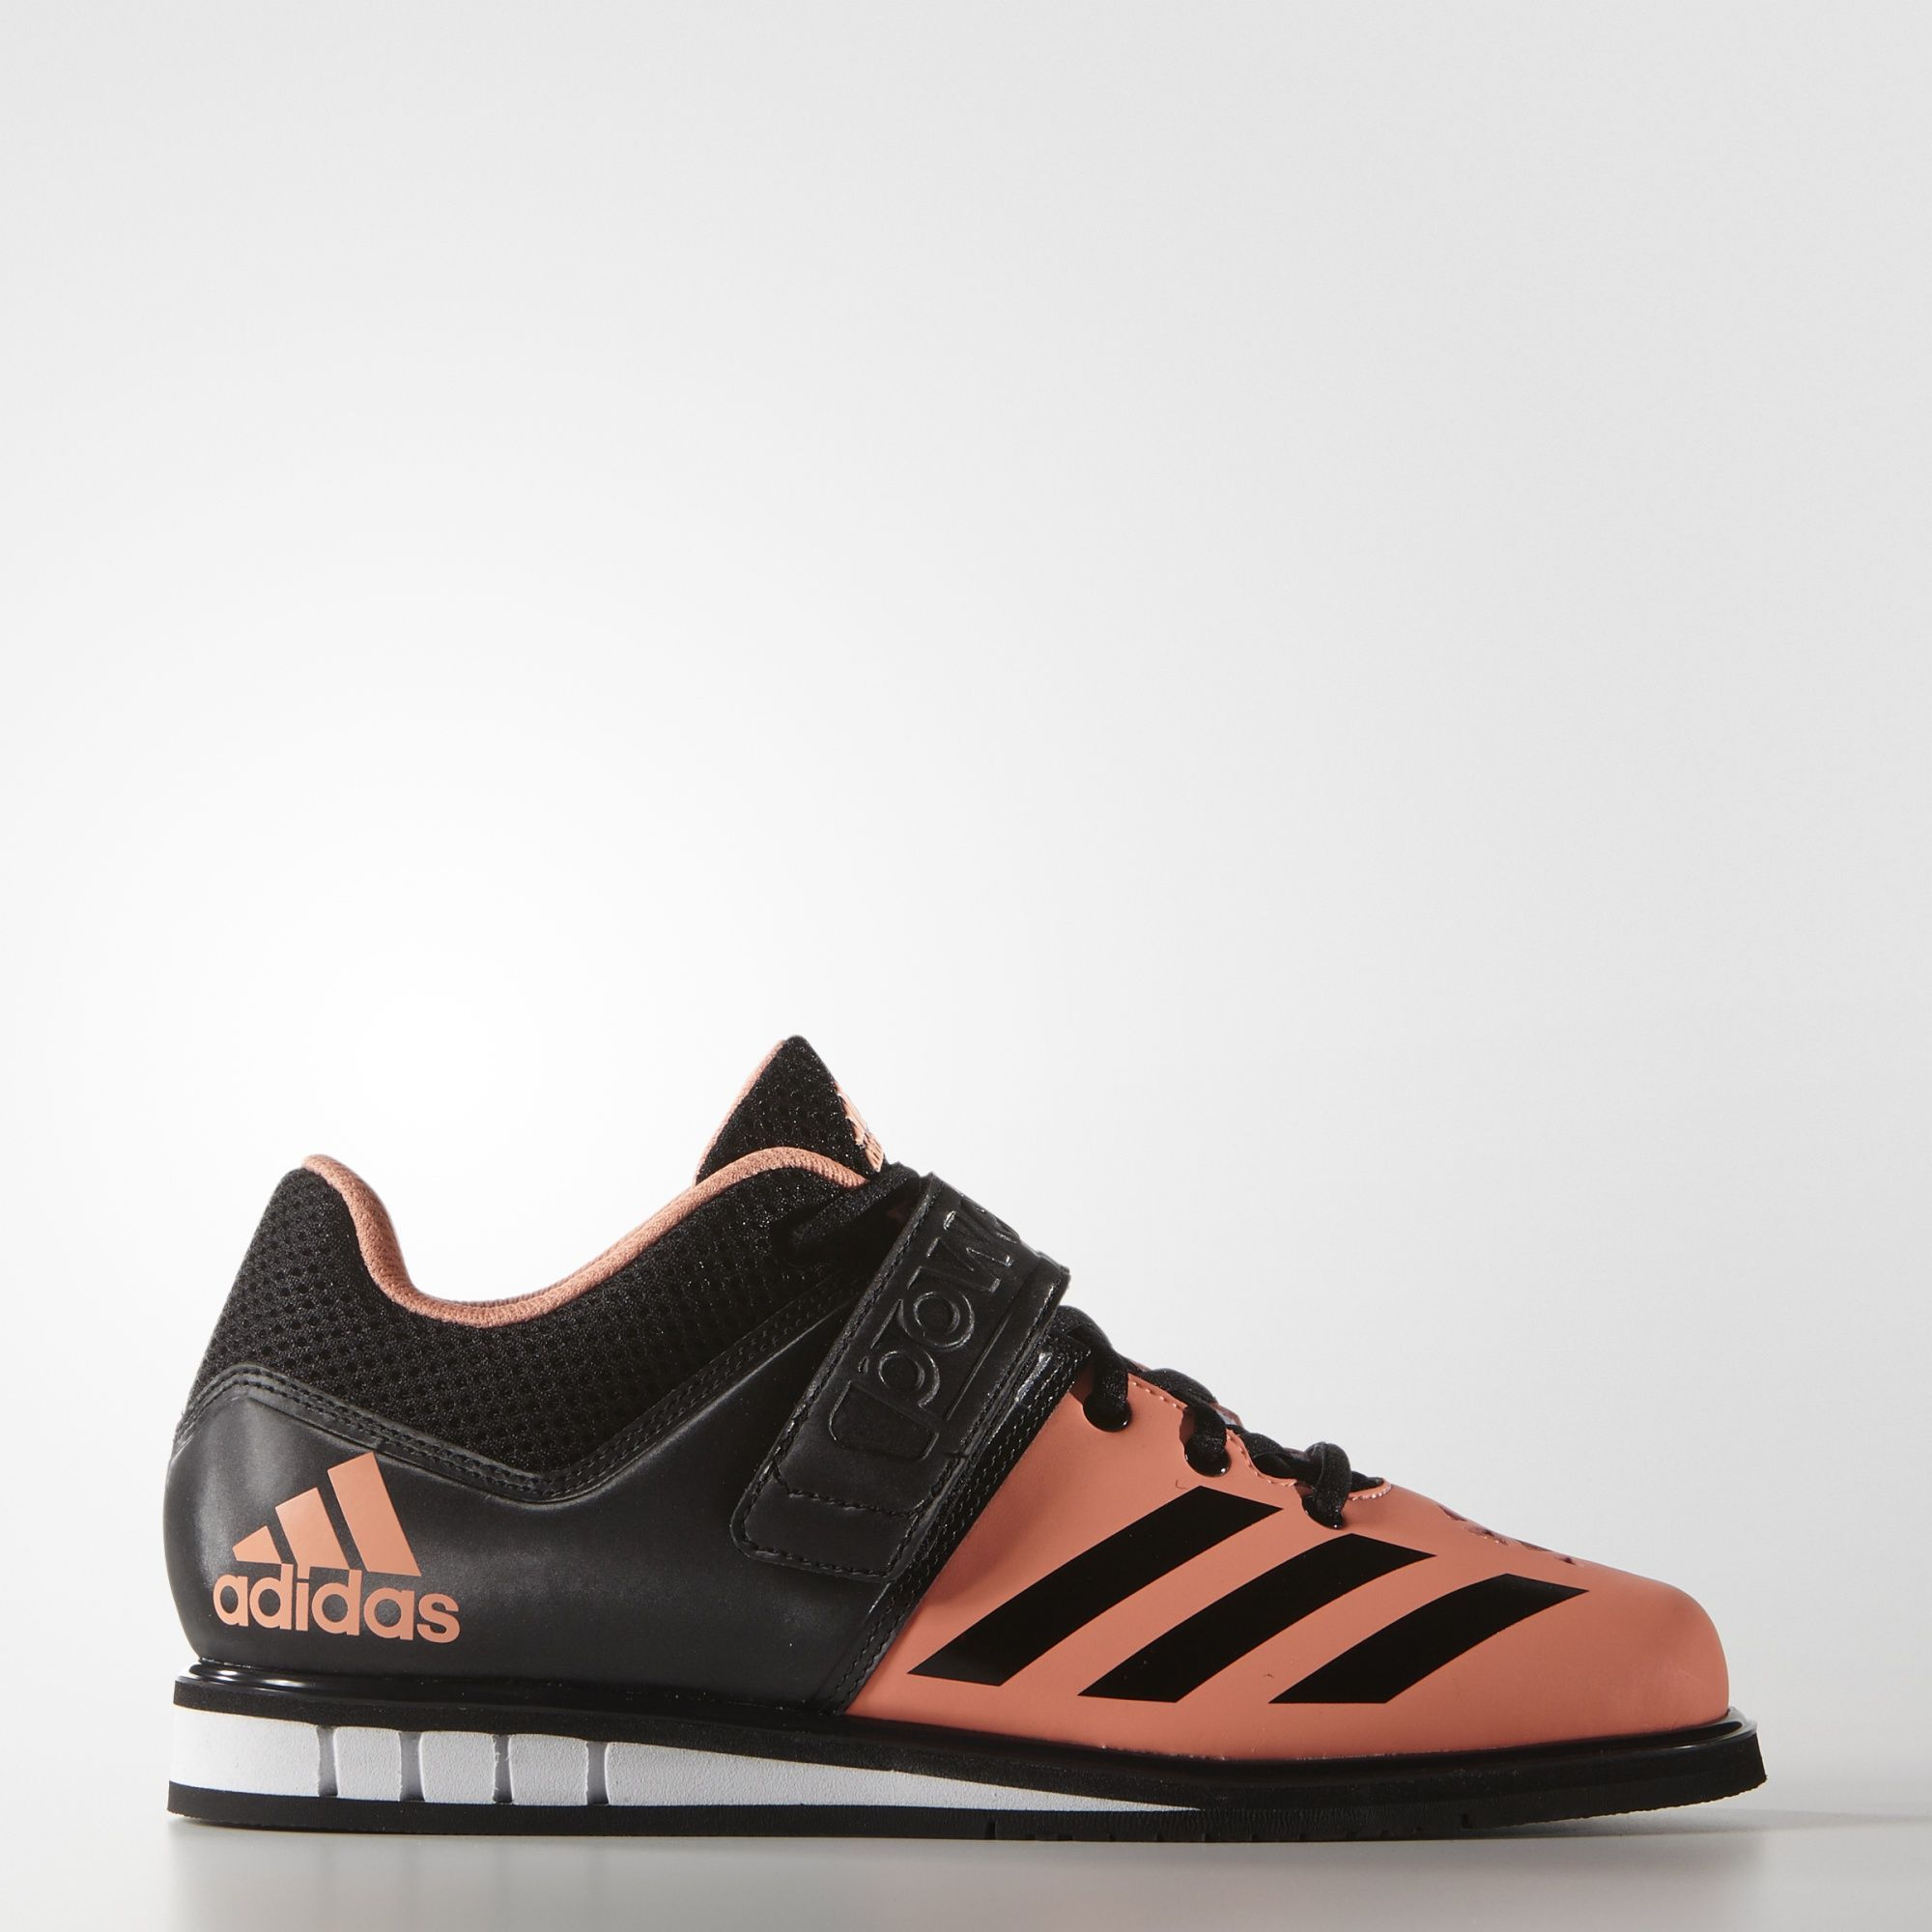 adidas - Powerlift.3 Shoes. Workout ...